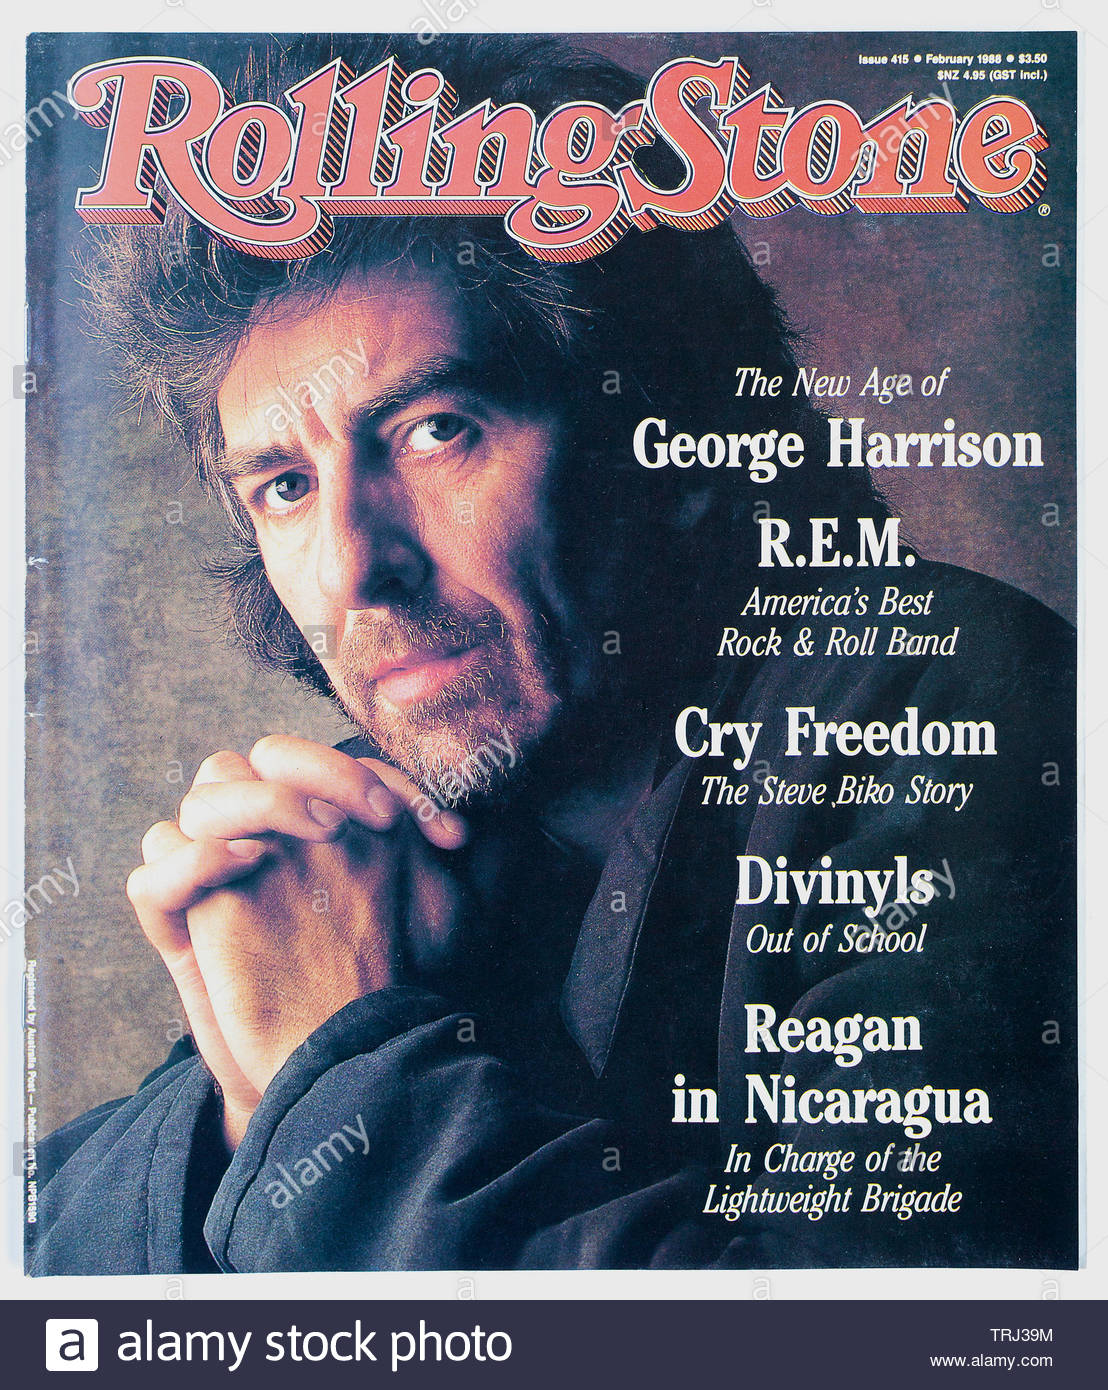 The cover of Rolling Stone magazine, issue 415, February 1988,  featuring George Harrison - Stock Image